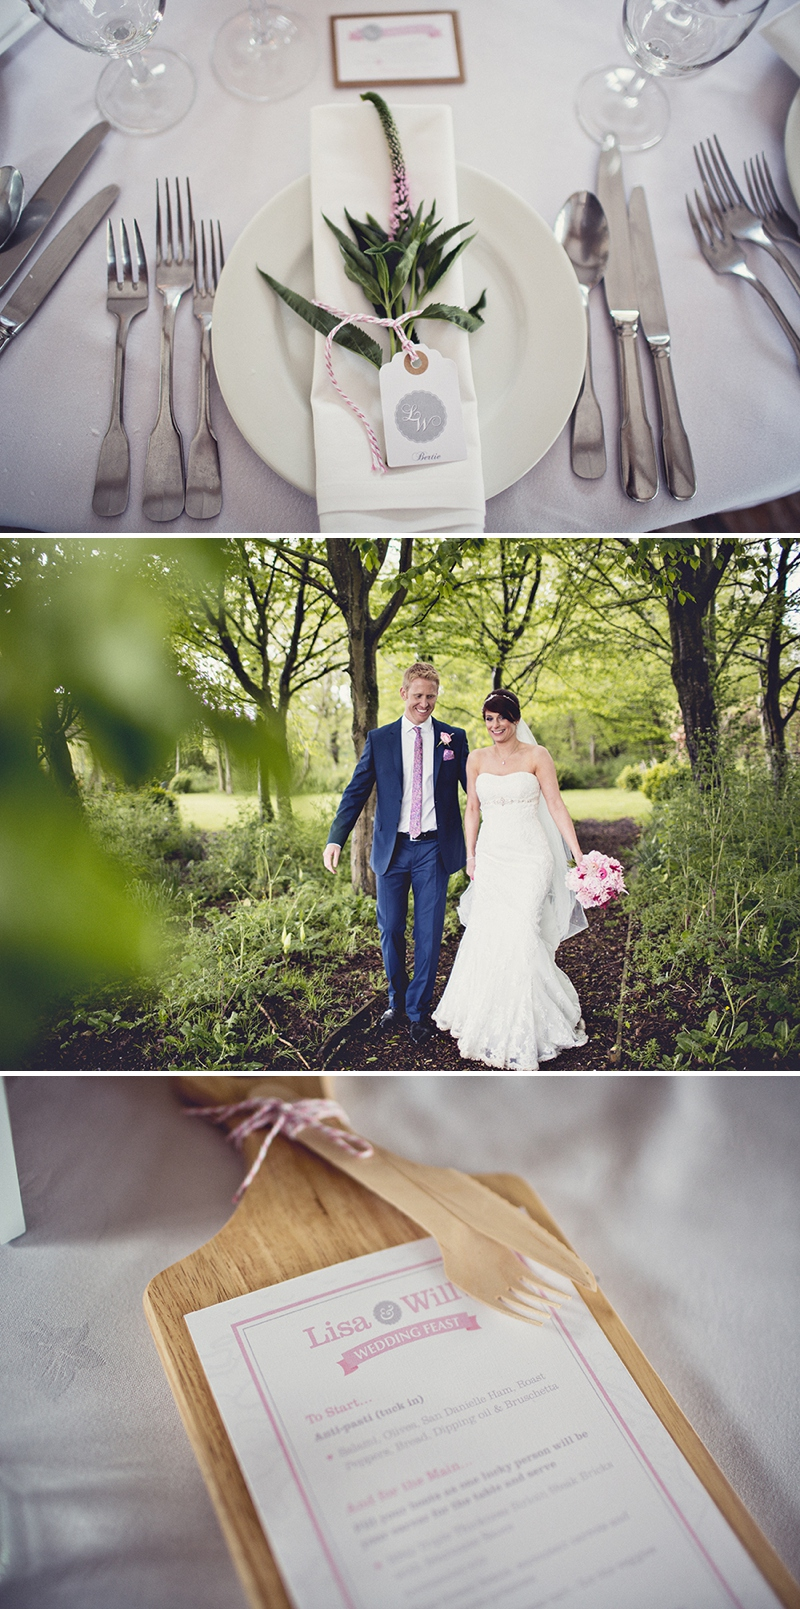 A beautiful cripps barn wedding reception with a pink and grey a pretty wedding at cripps barn by anna clarke photography with a lace pronovias dress0313 fandeluxe Choice Image